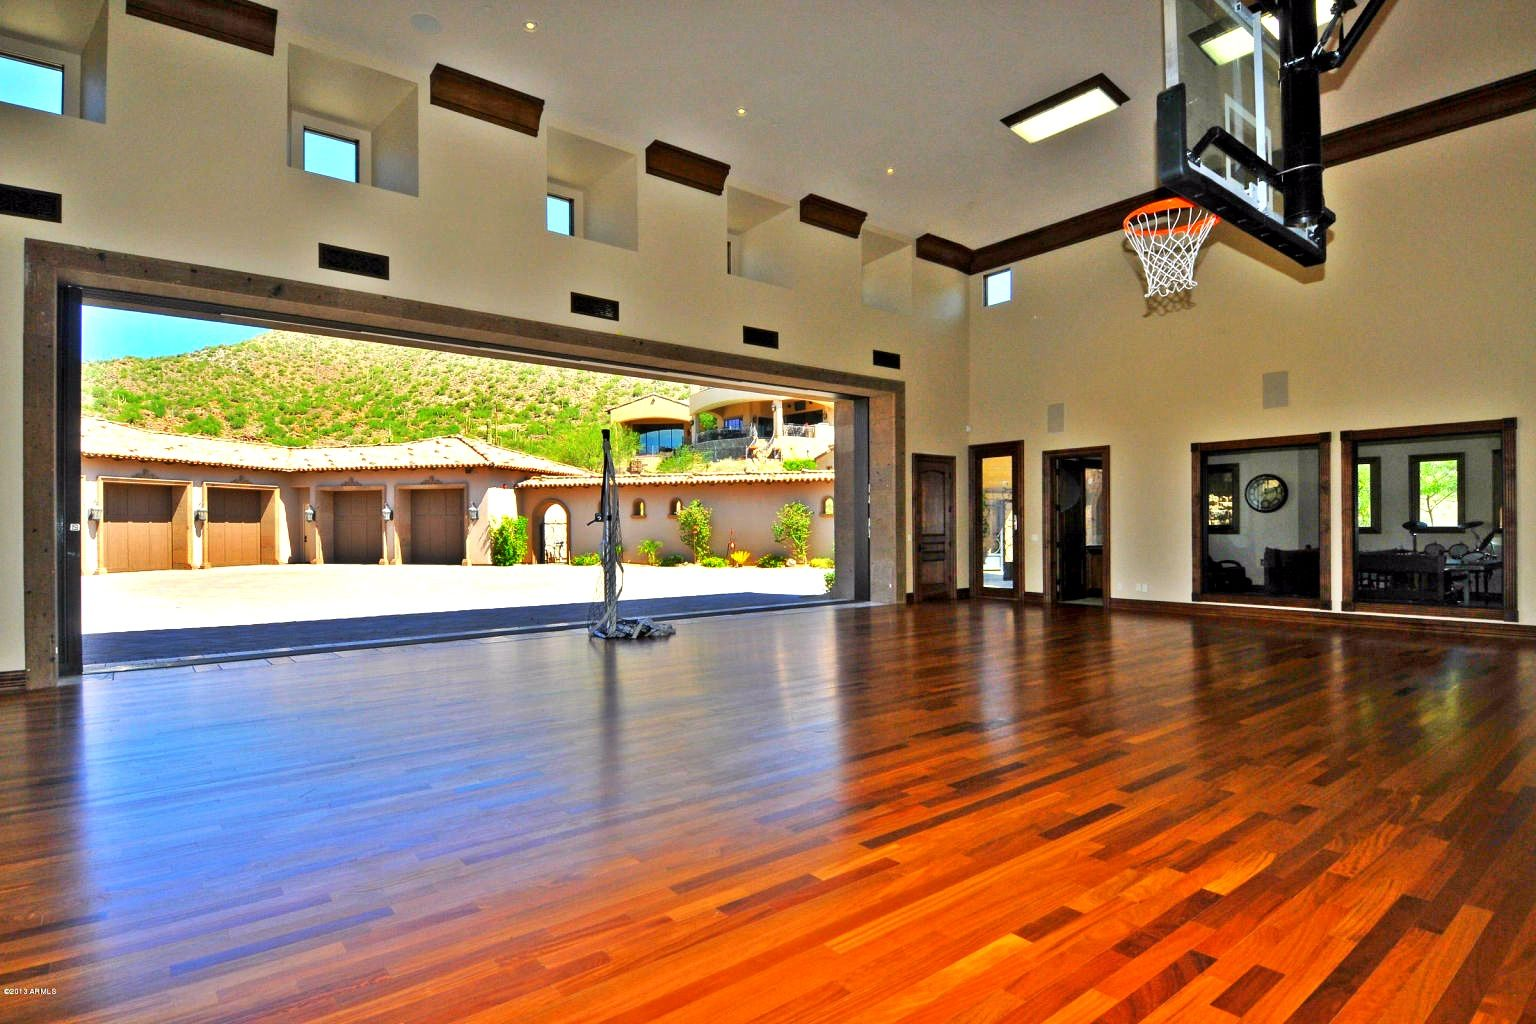 Indoor basketball court diamond point 1 las sendas for Building indoor basketball court